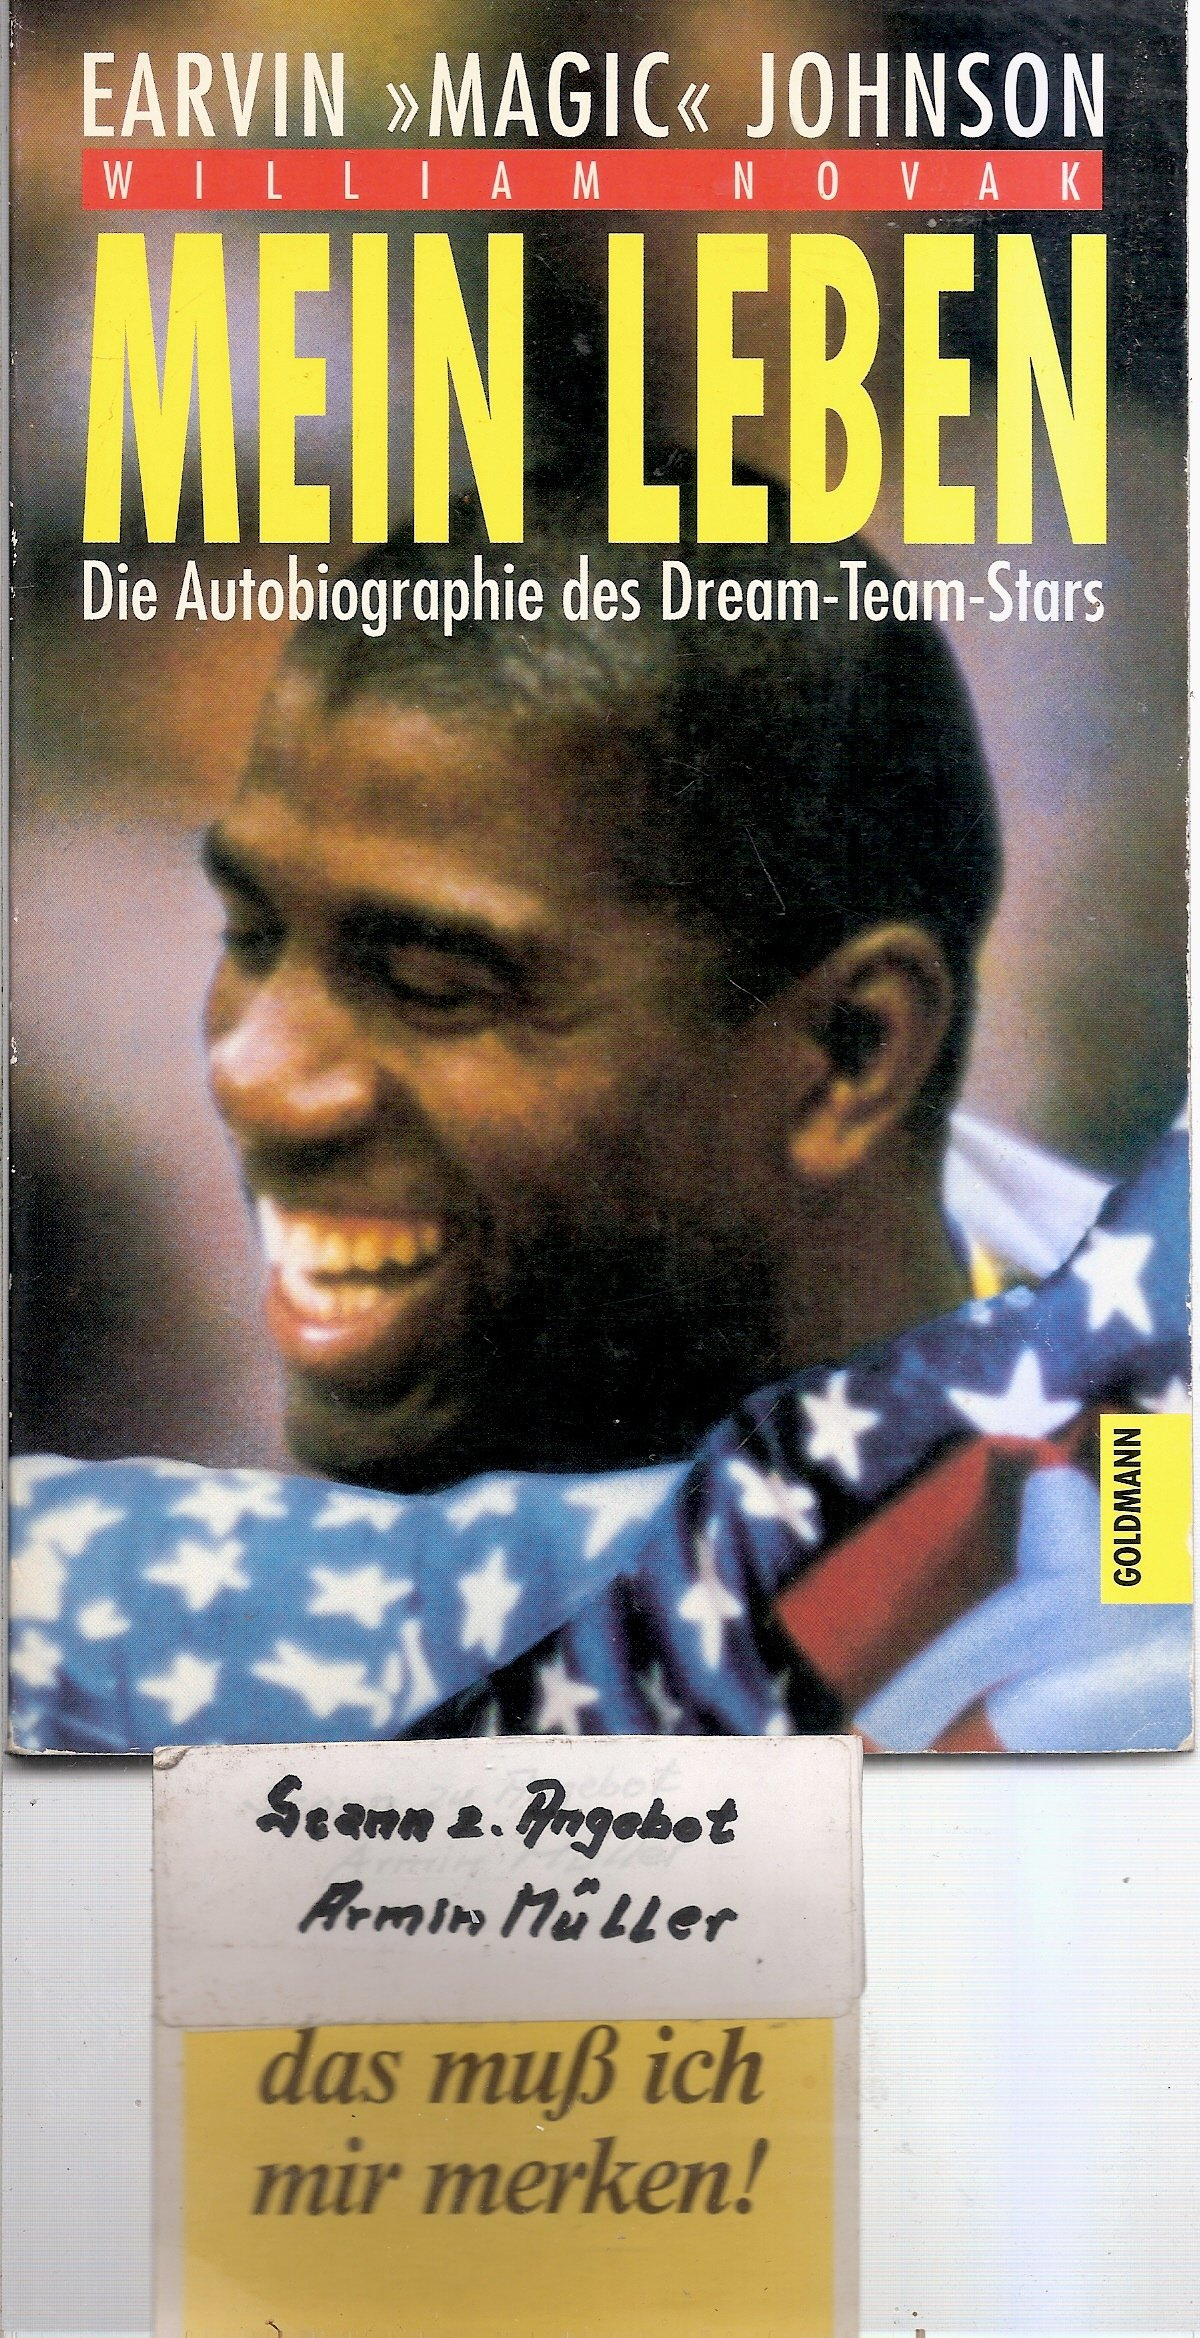 Mein Leben Taschenbuch Earvin Johnson William Novak Magic Johnson 3442422795